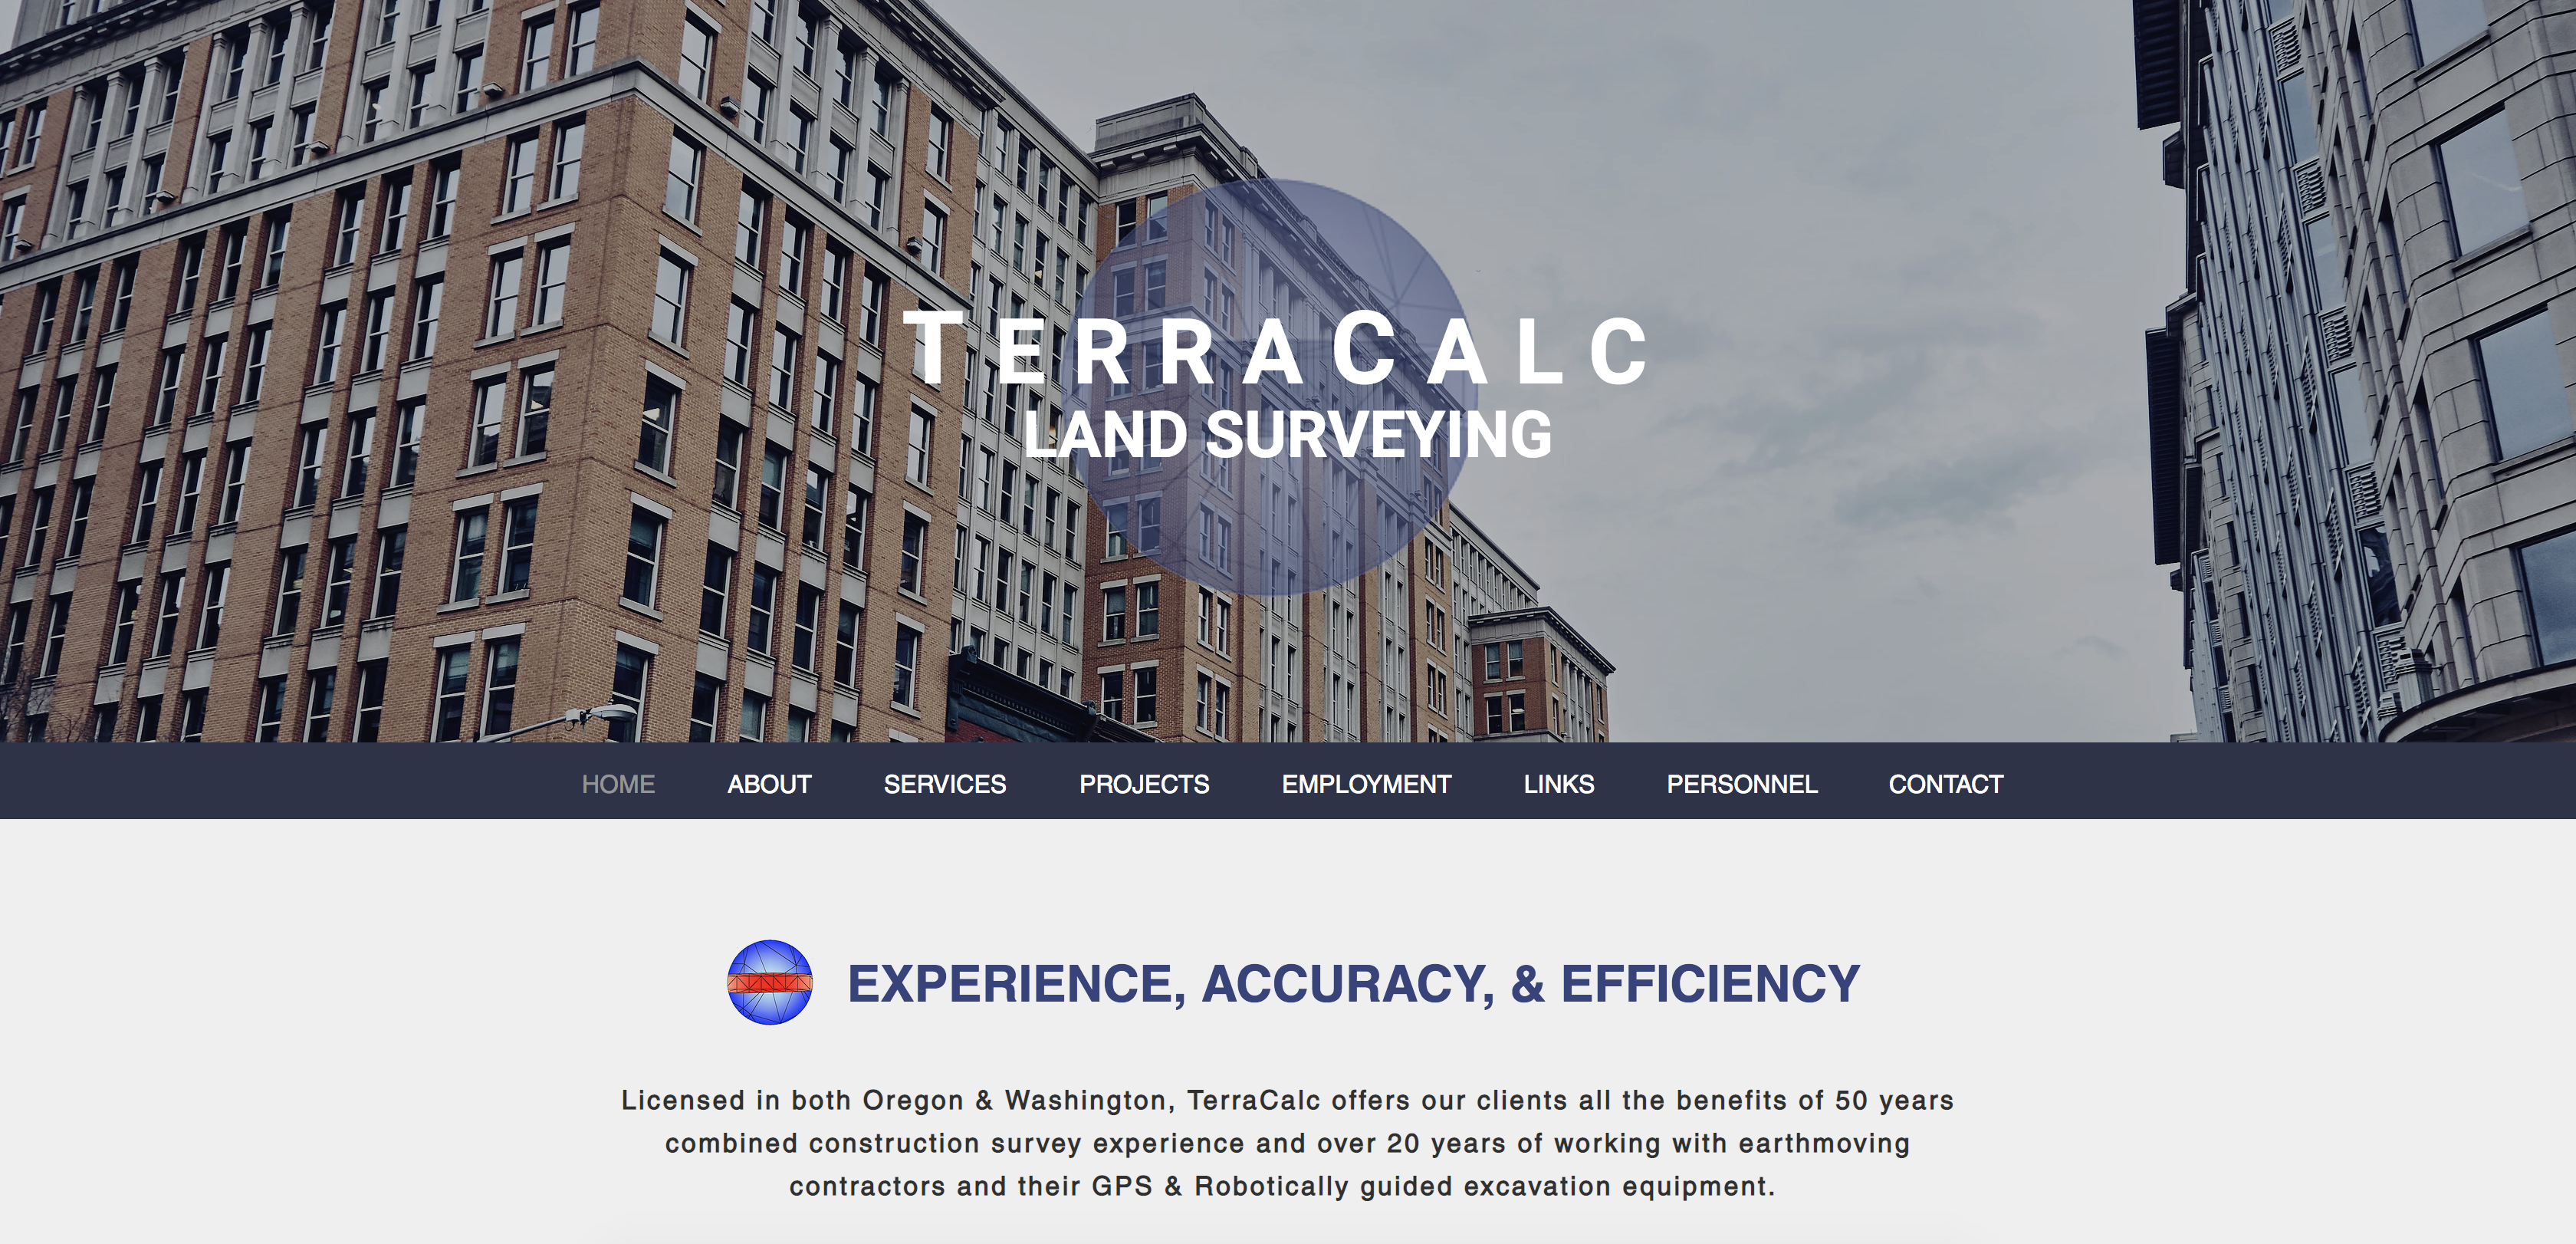 TerraCalc Land Surveying